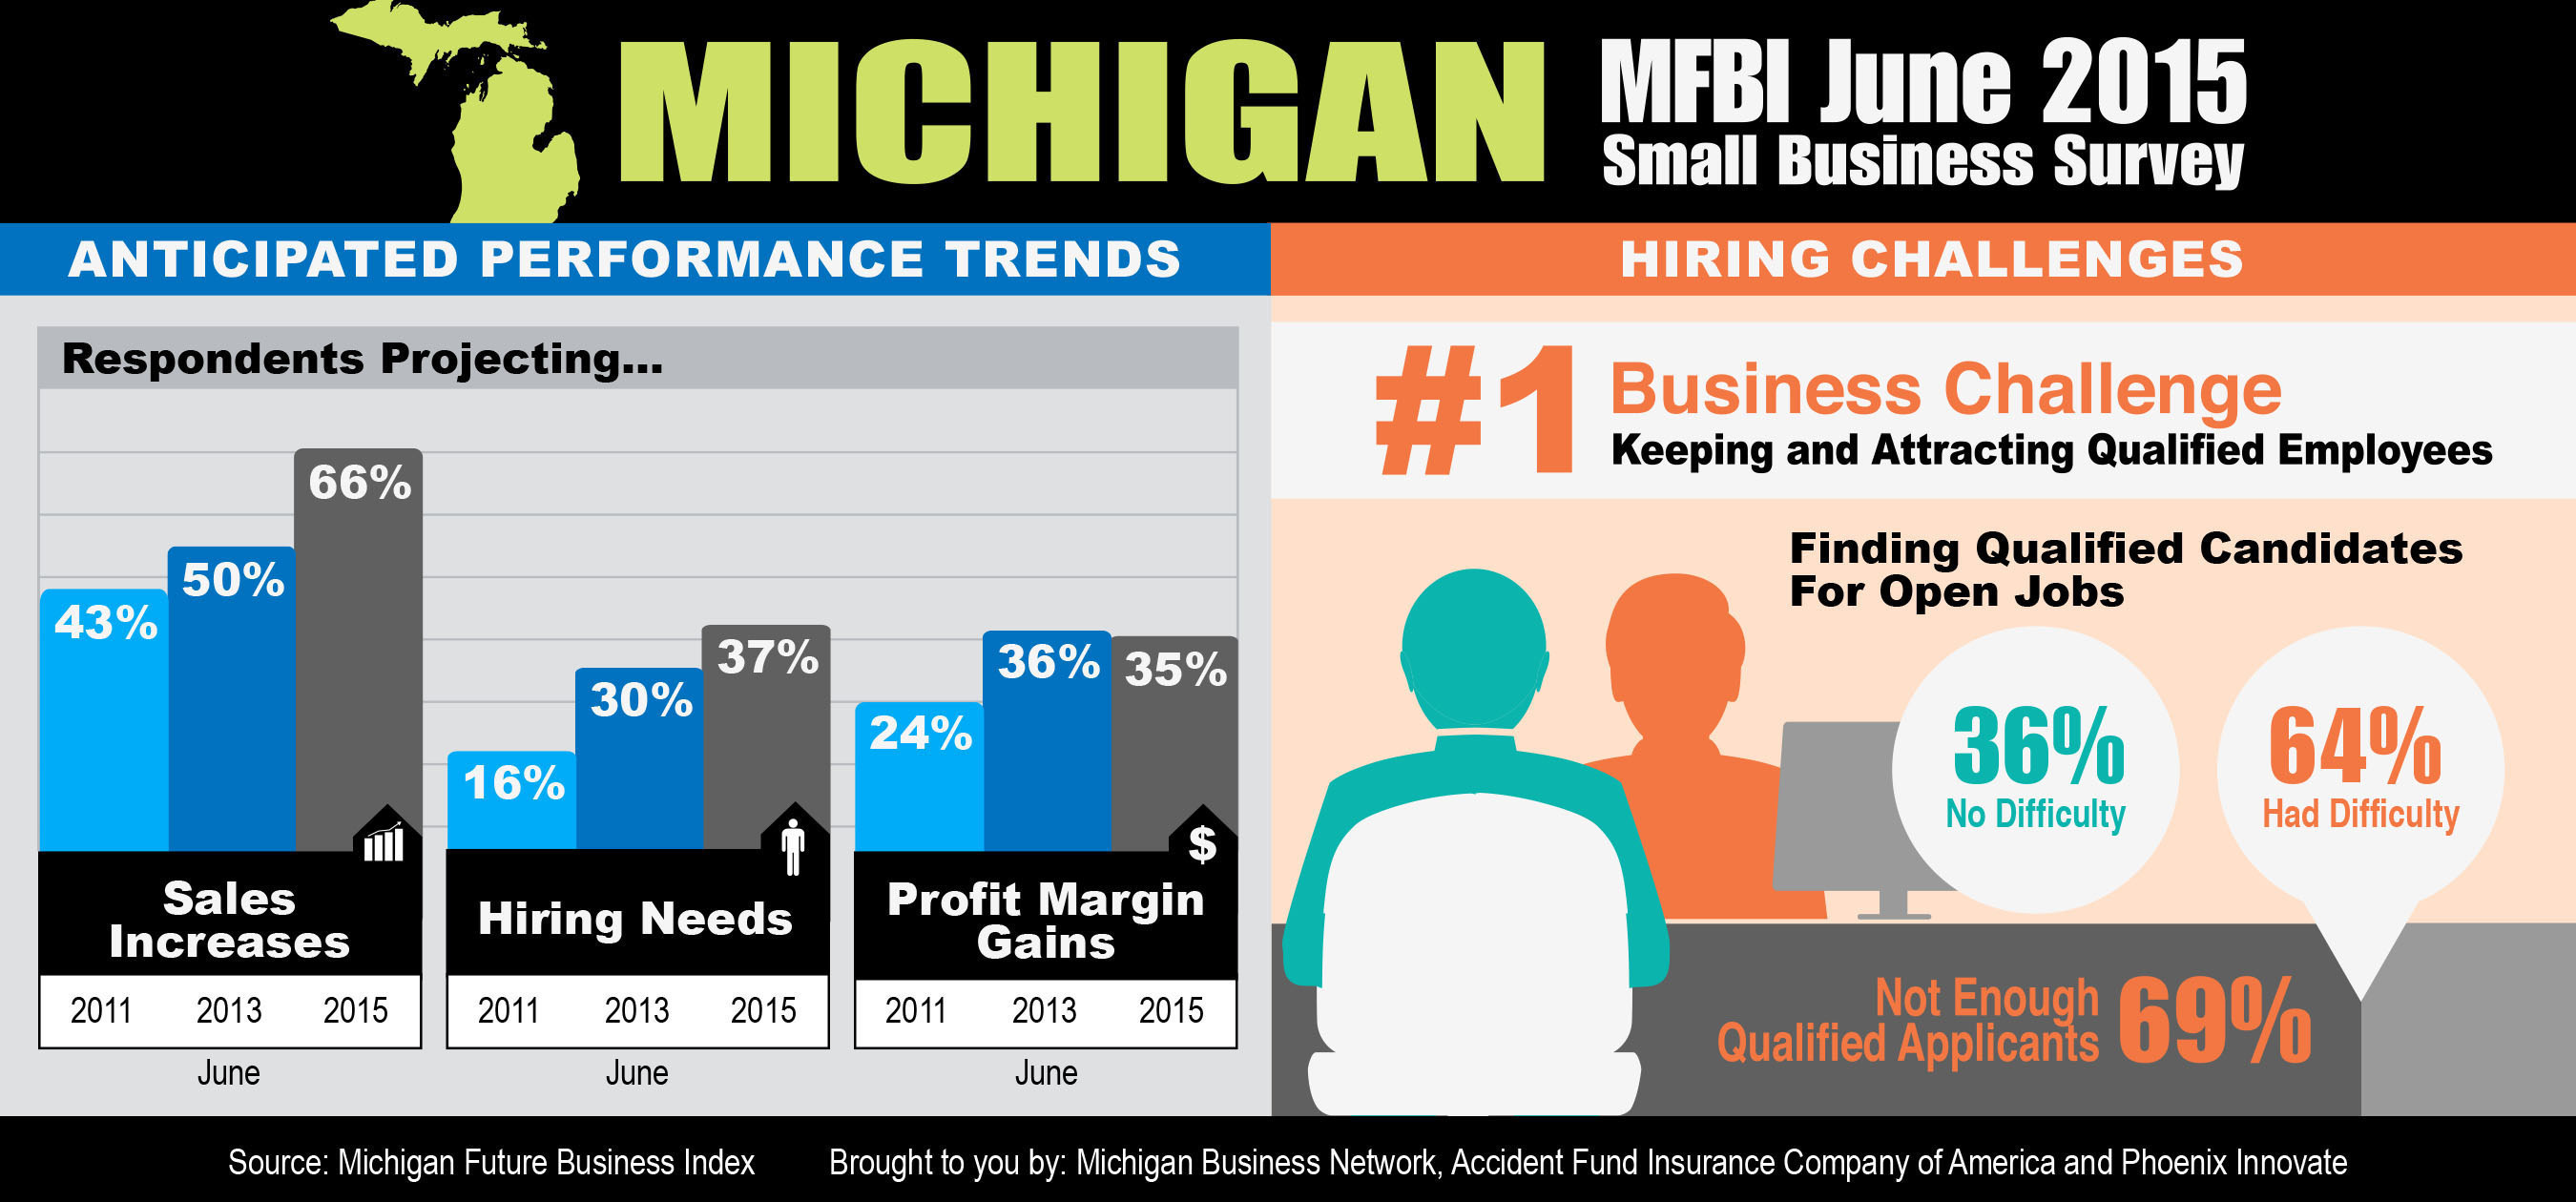 Small- to mid-sized Michigan business owners remain generally optimistic about the economy and their future, but concern over finding qualified workers to fill positions may have begun to affect their optimism toward future profitability, according to the June 2015 Michigan Future Business Index, published in partnership with Accident Fund Insurance Company of America and the Michigan Business Network.